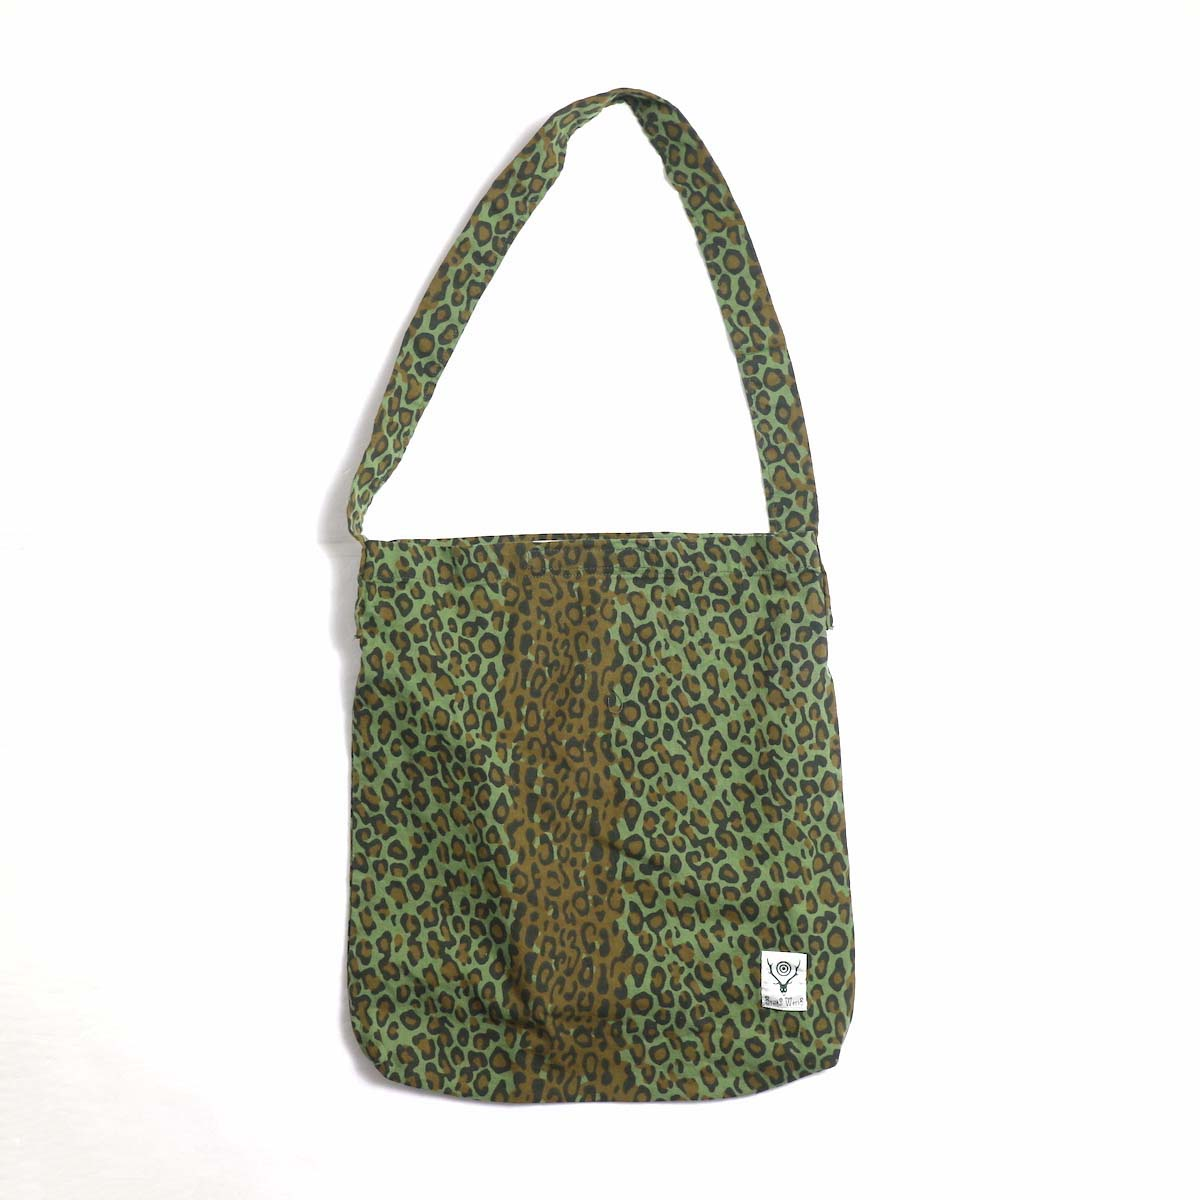 SOUTH2 WEST8 / Book Bag -Printed Flannel / Camouflage (Leopard)